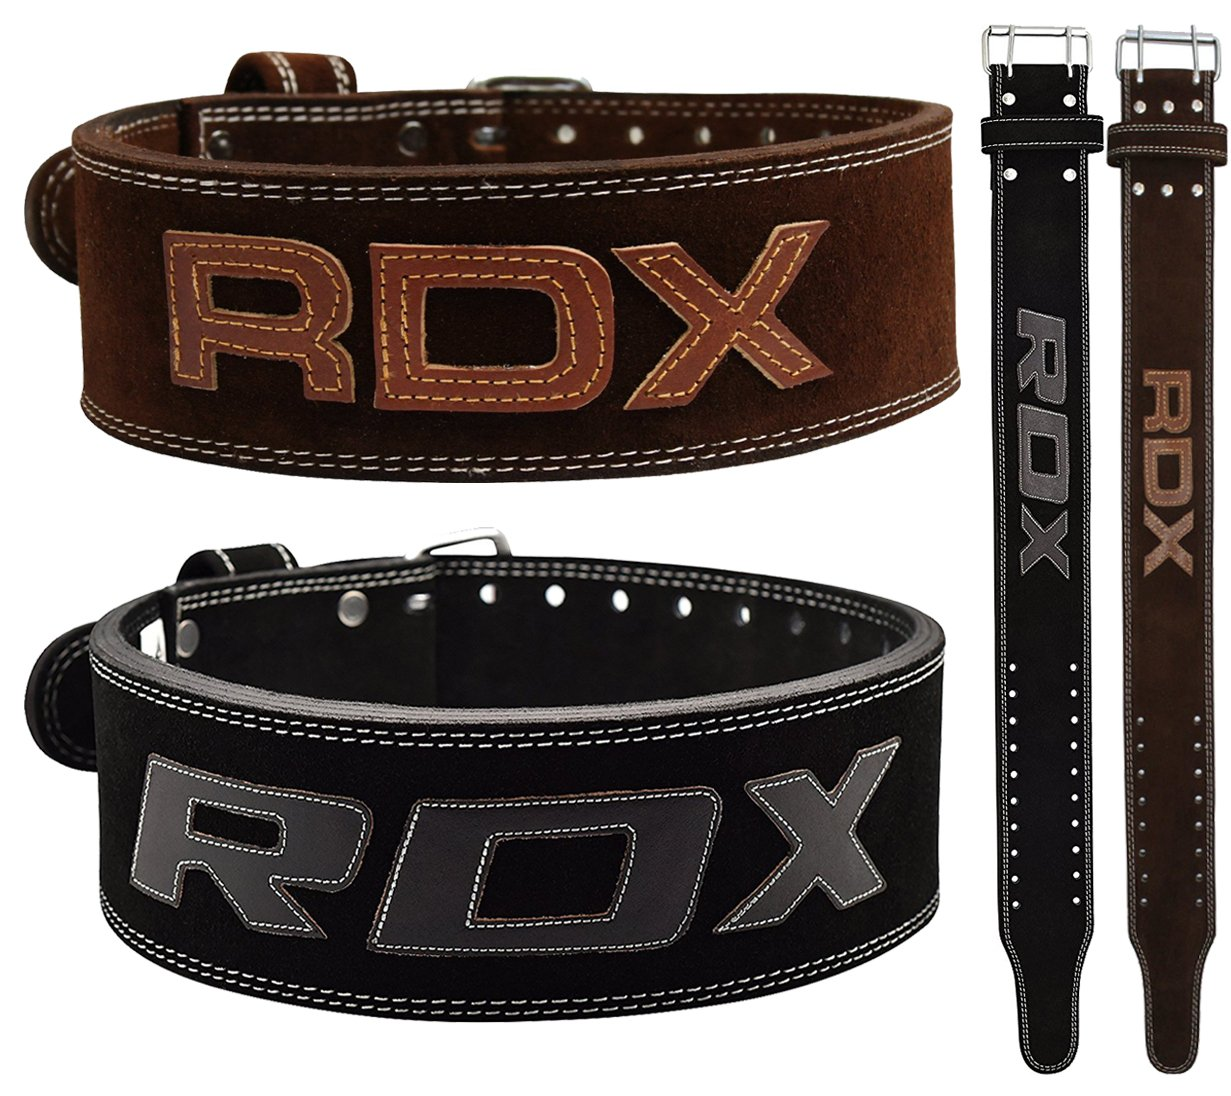 RDX Powerlifting Belt for Weight Lifting Gym Training – Double Prong Leather Belt 10mm Thick 4 Lumbar Back Support – Great for Strongman Functional Strength, Bodybuilding, Deadlifts Workout Squats